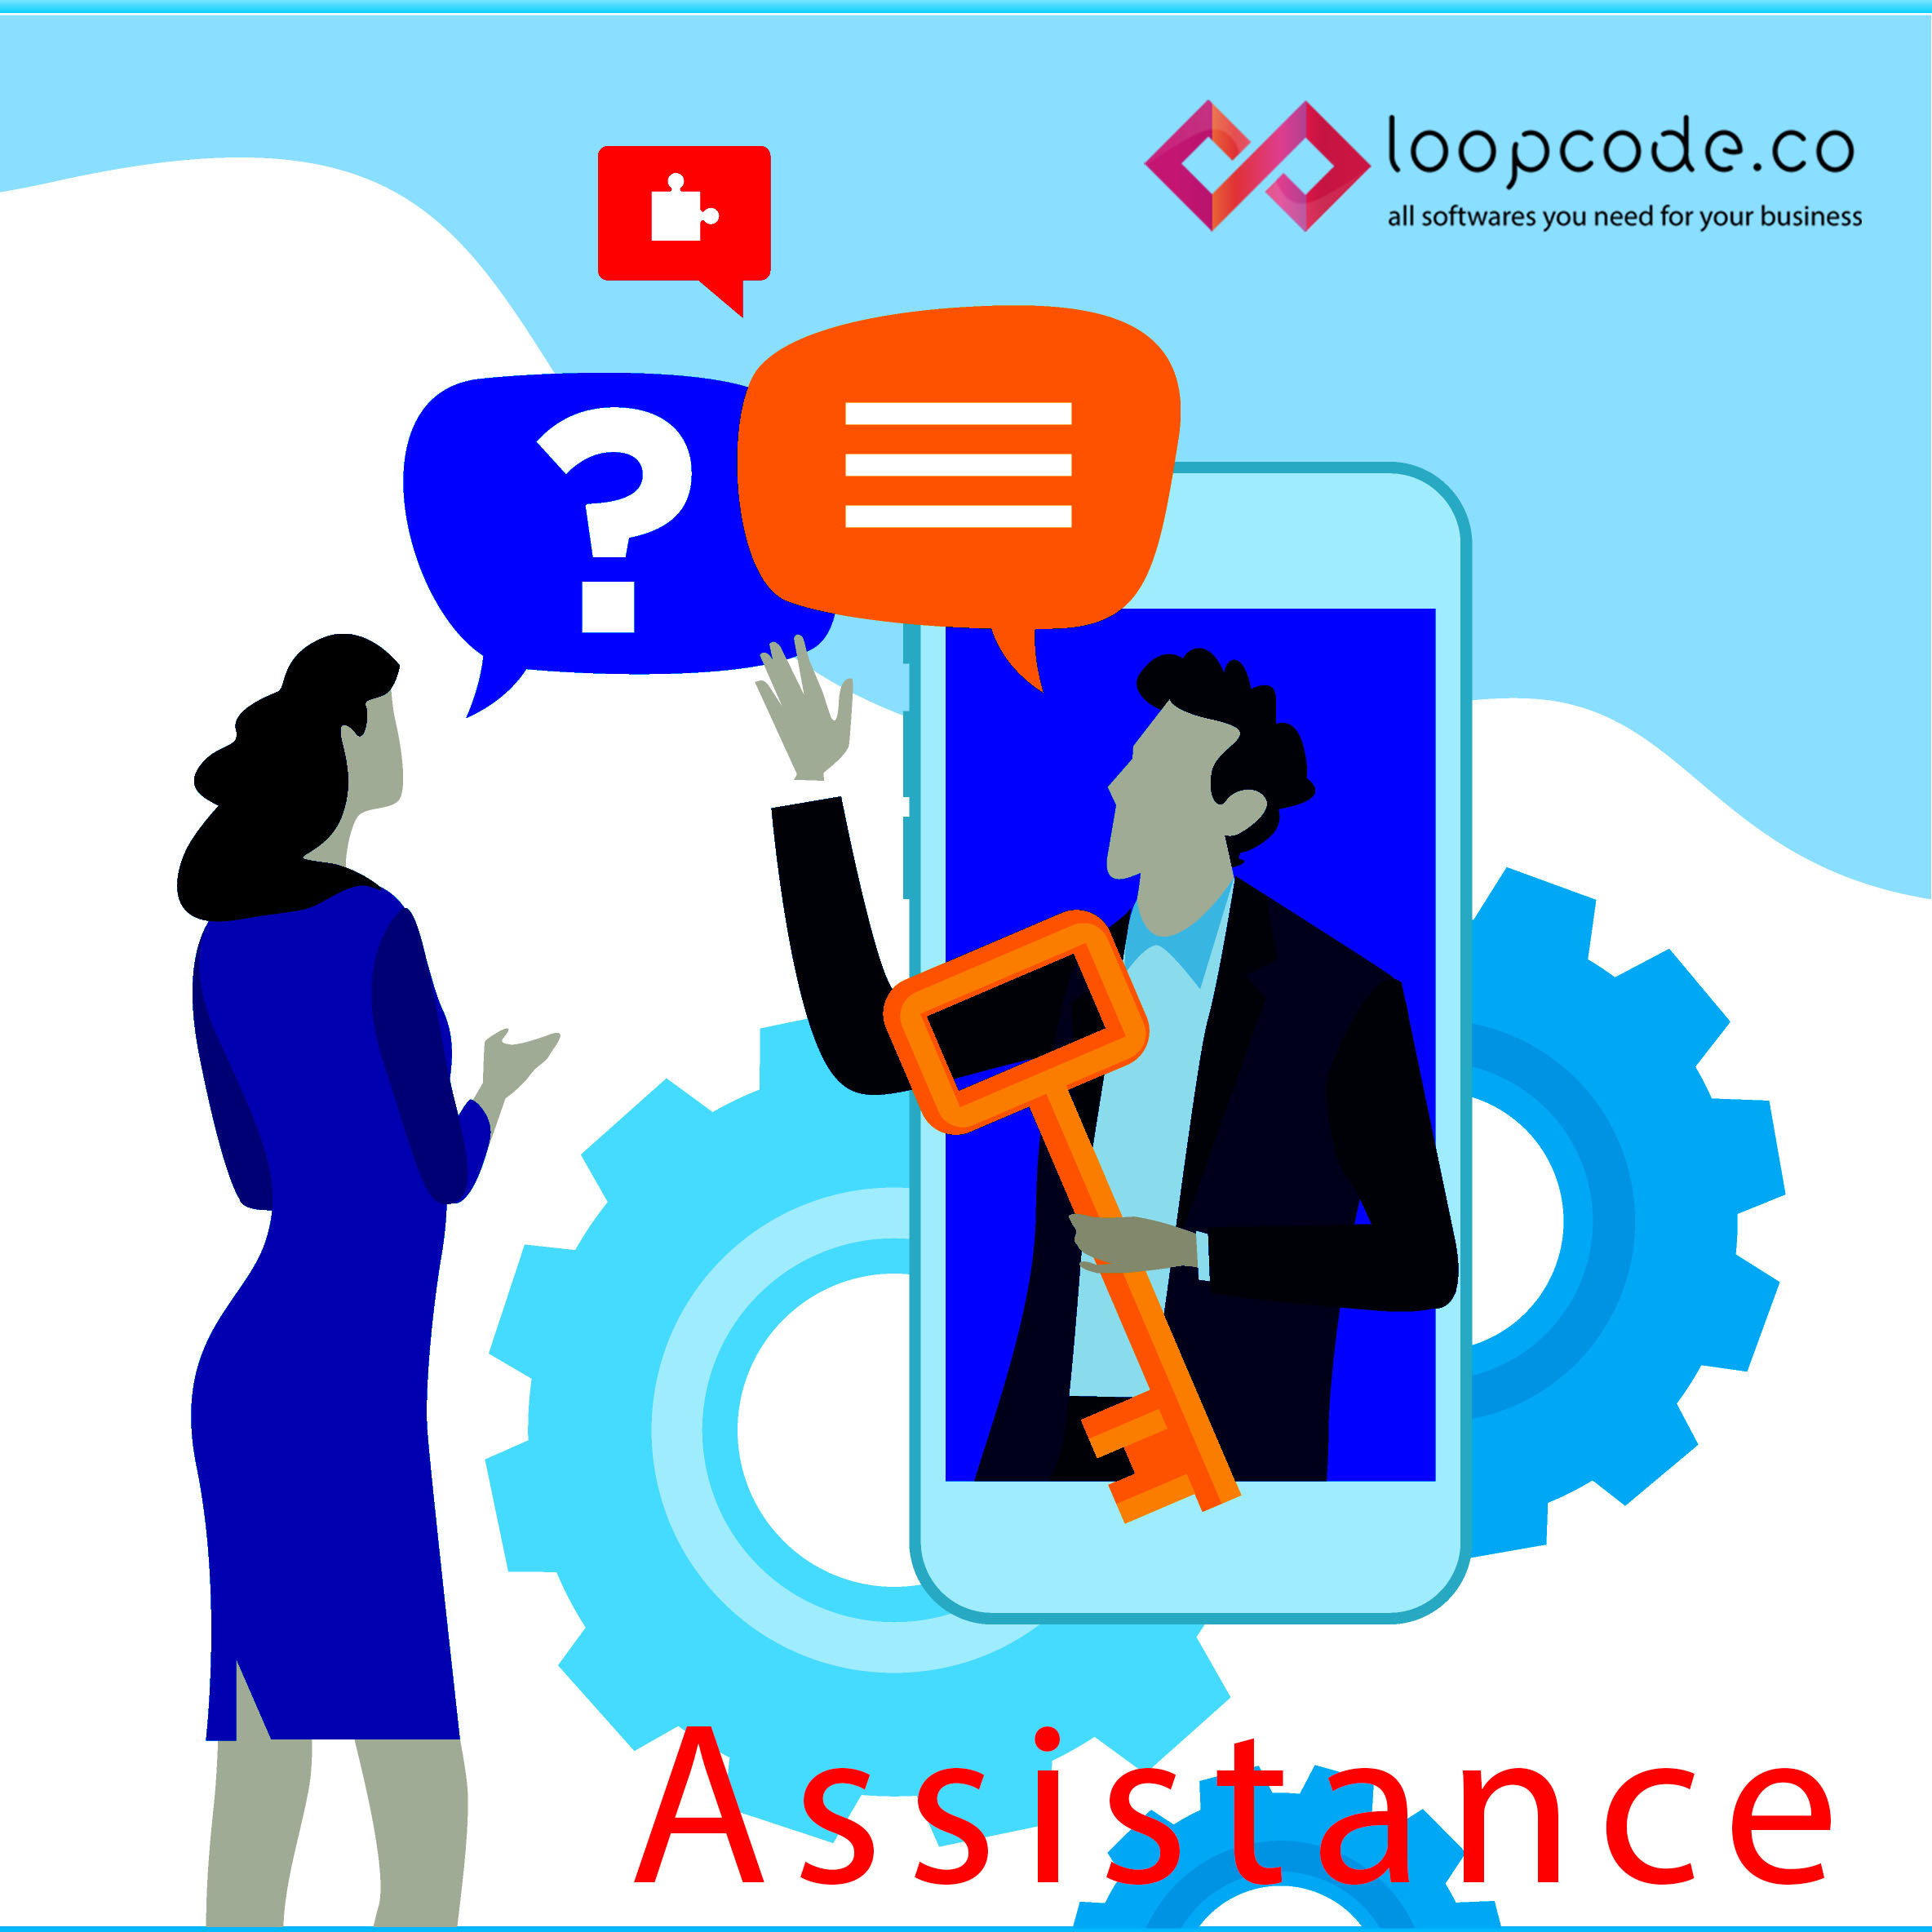 loopcode.co Assistant - Premium